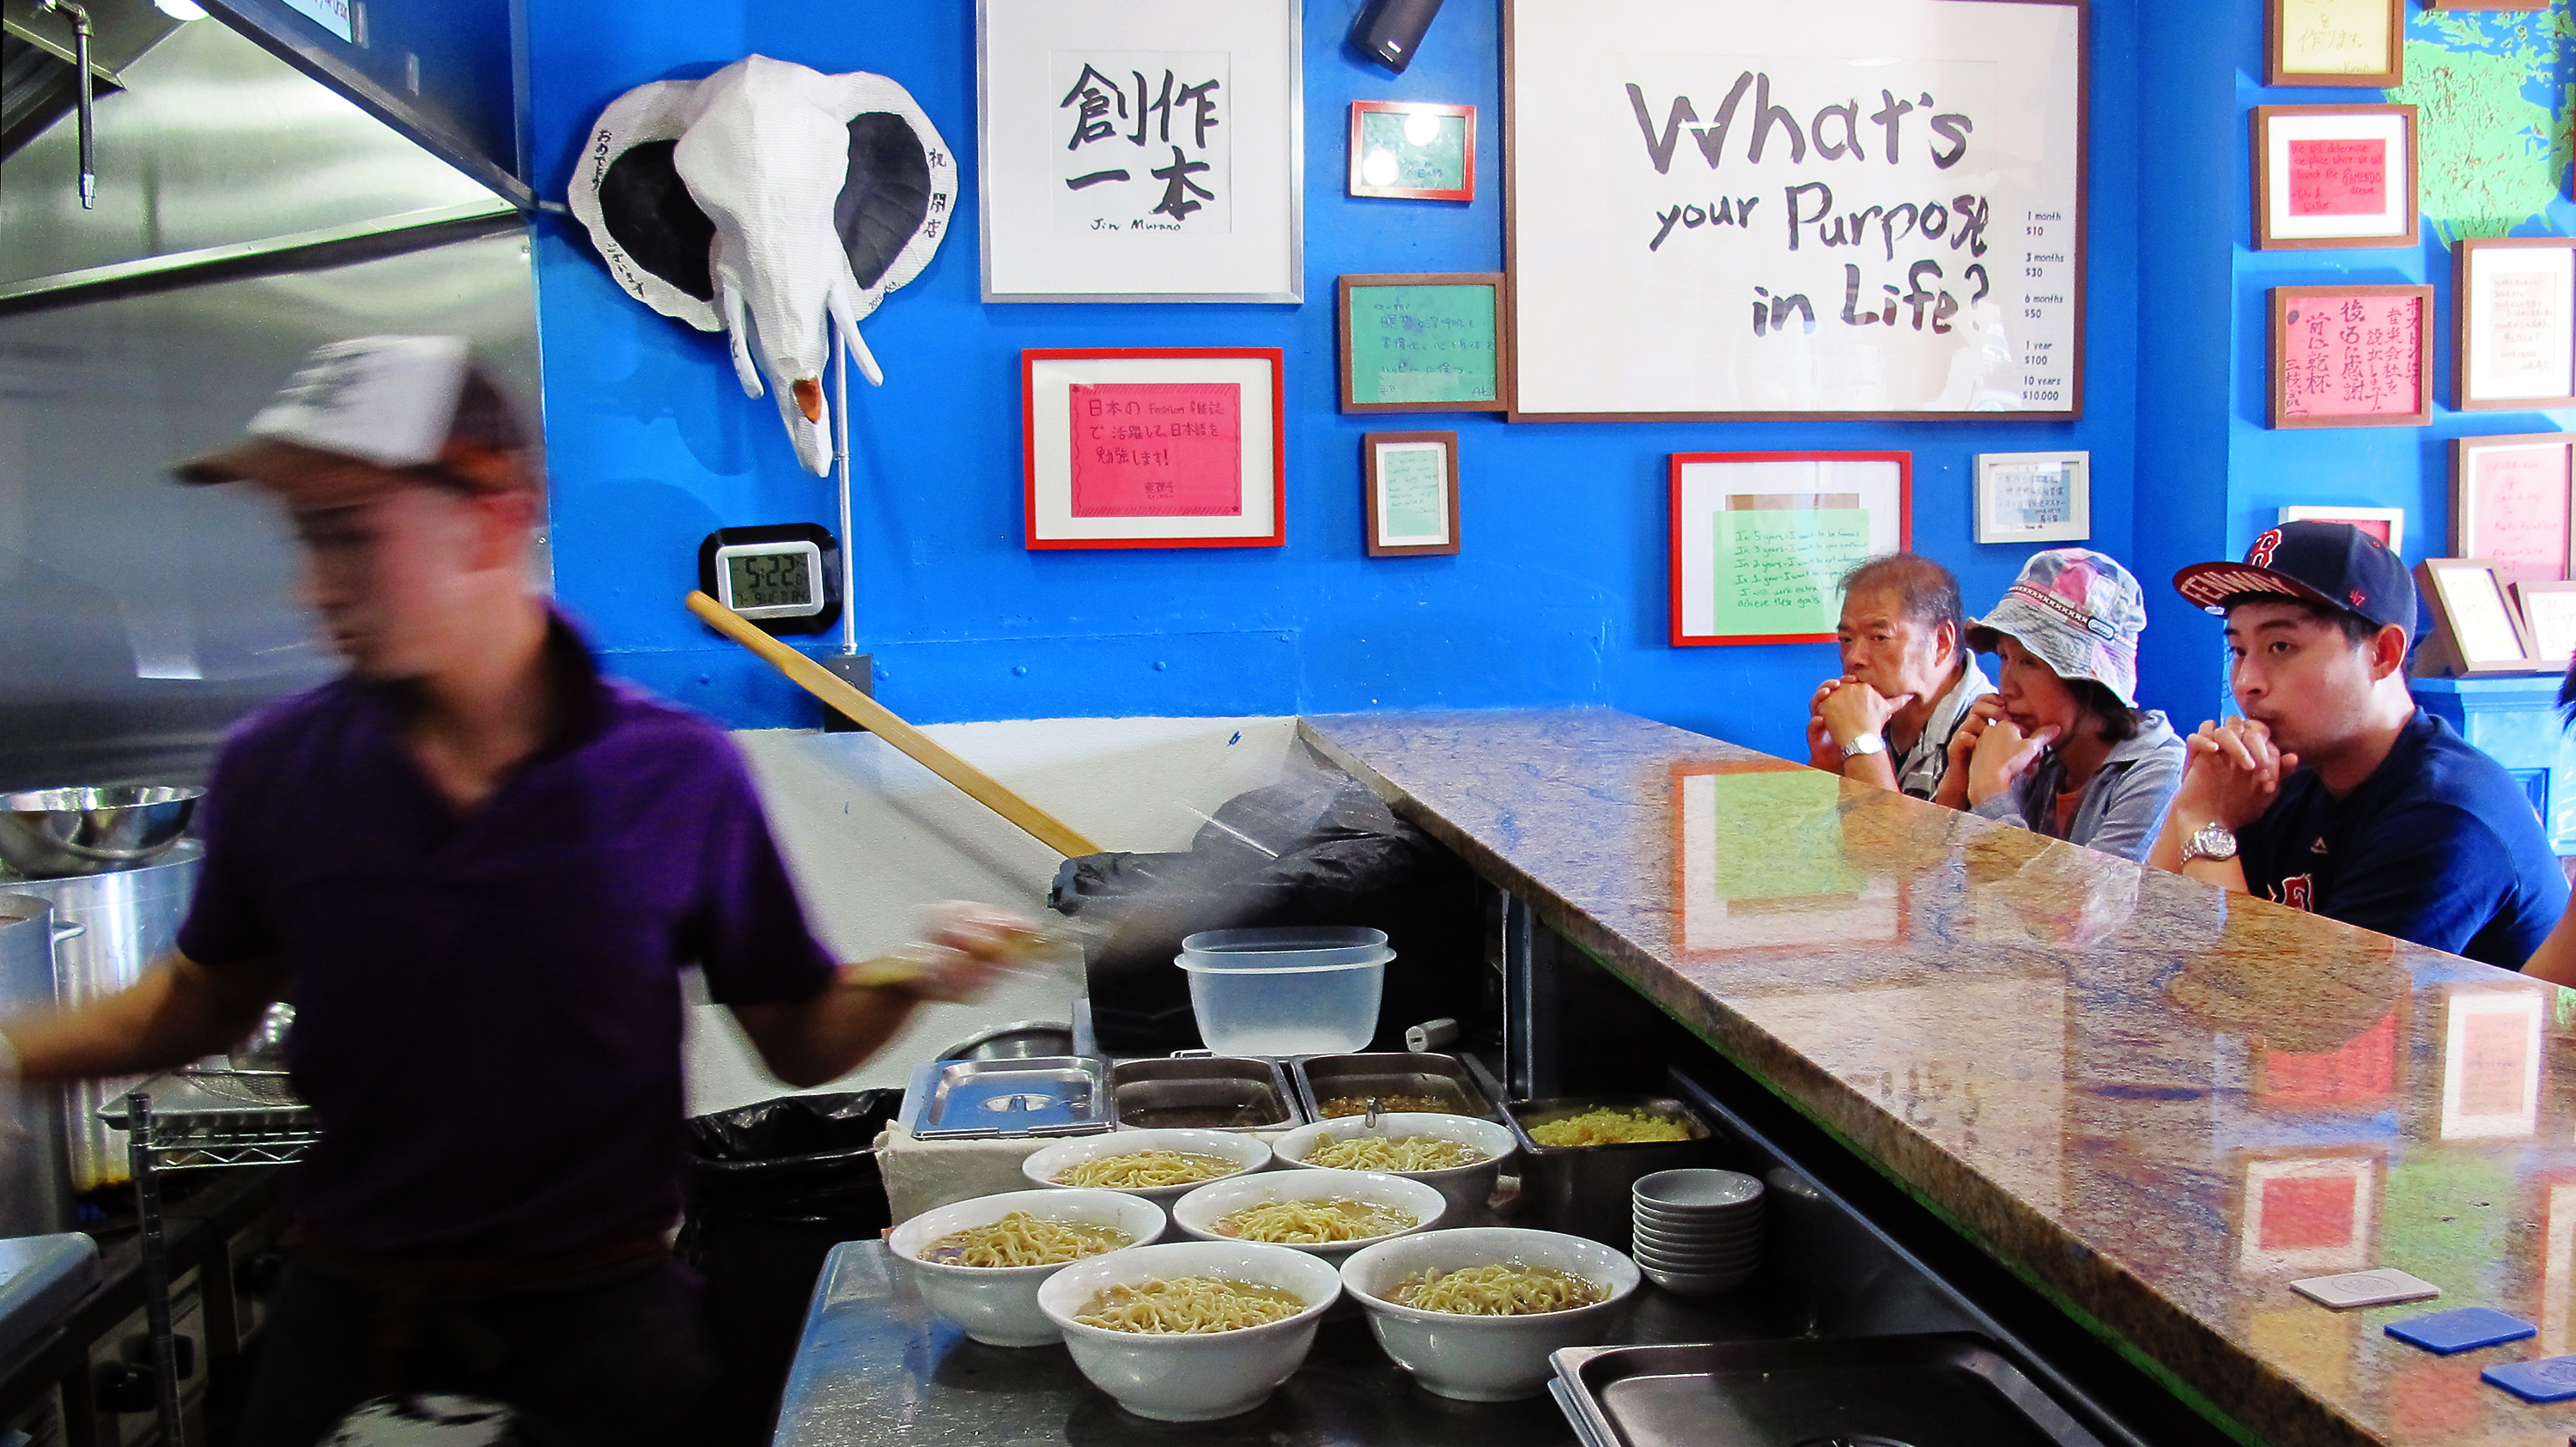 At Yume Wo Katare, eating ramen is treated as a path to personal fulfillment. Photo: Andrea Shea for WBUR